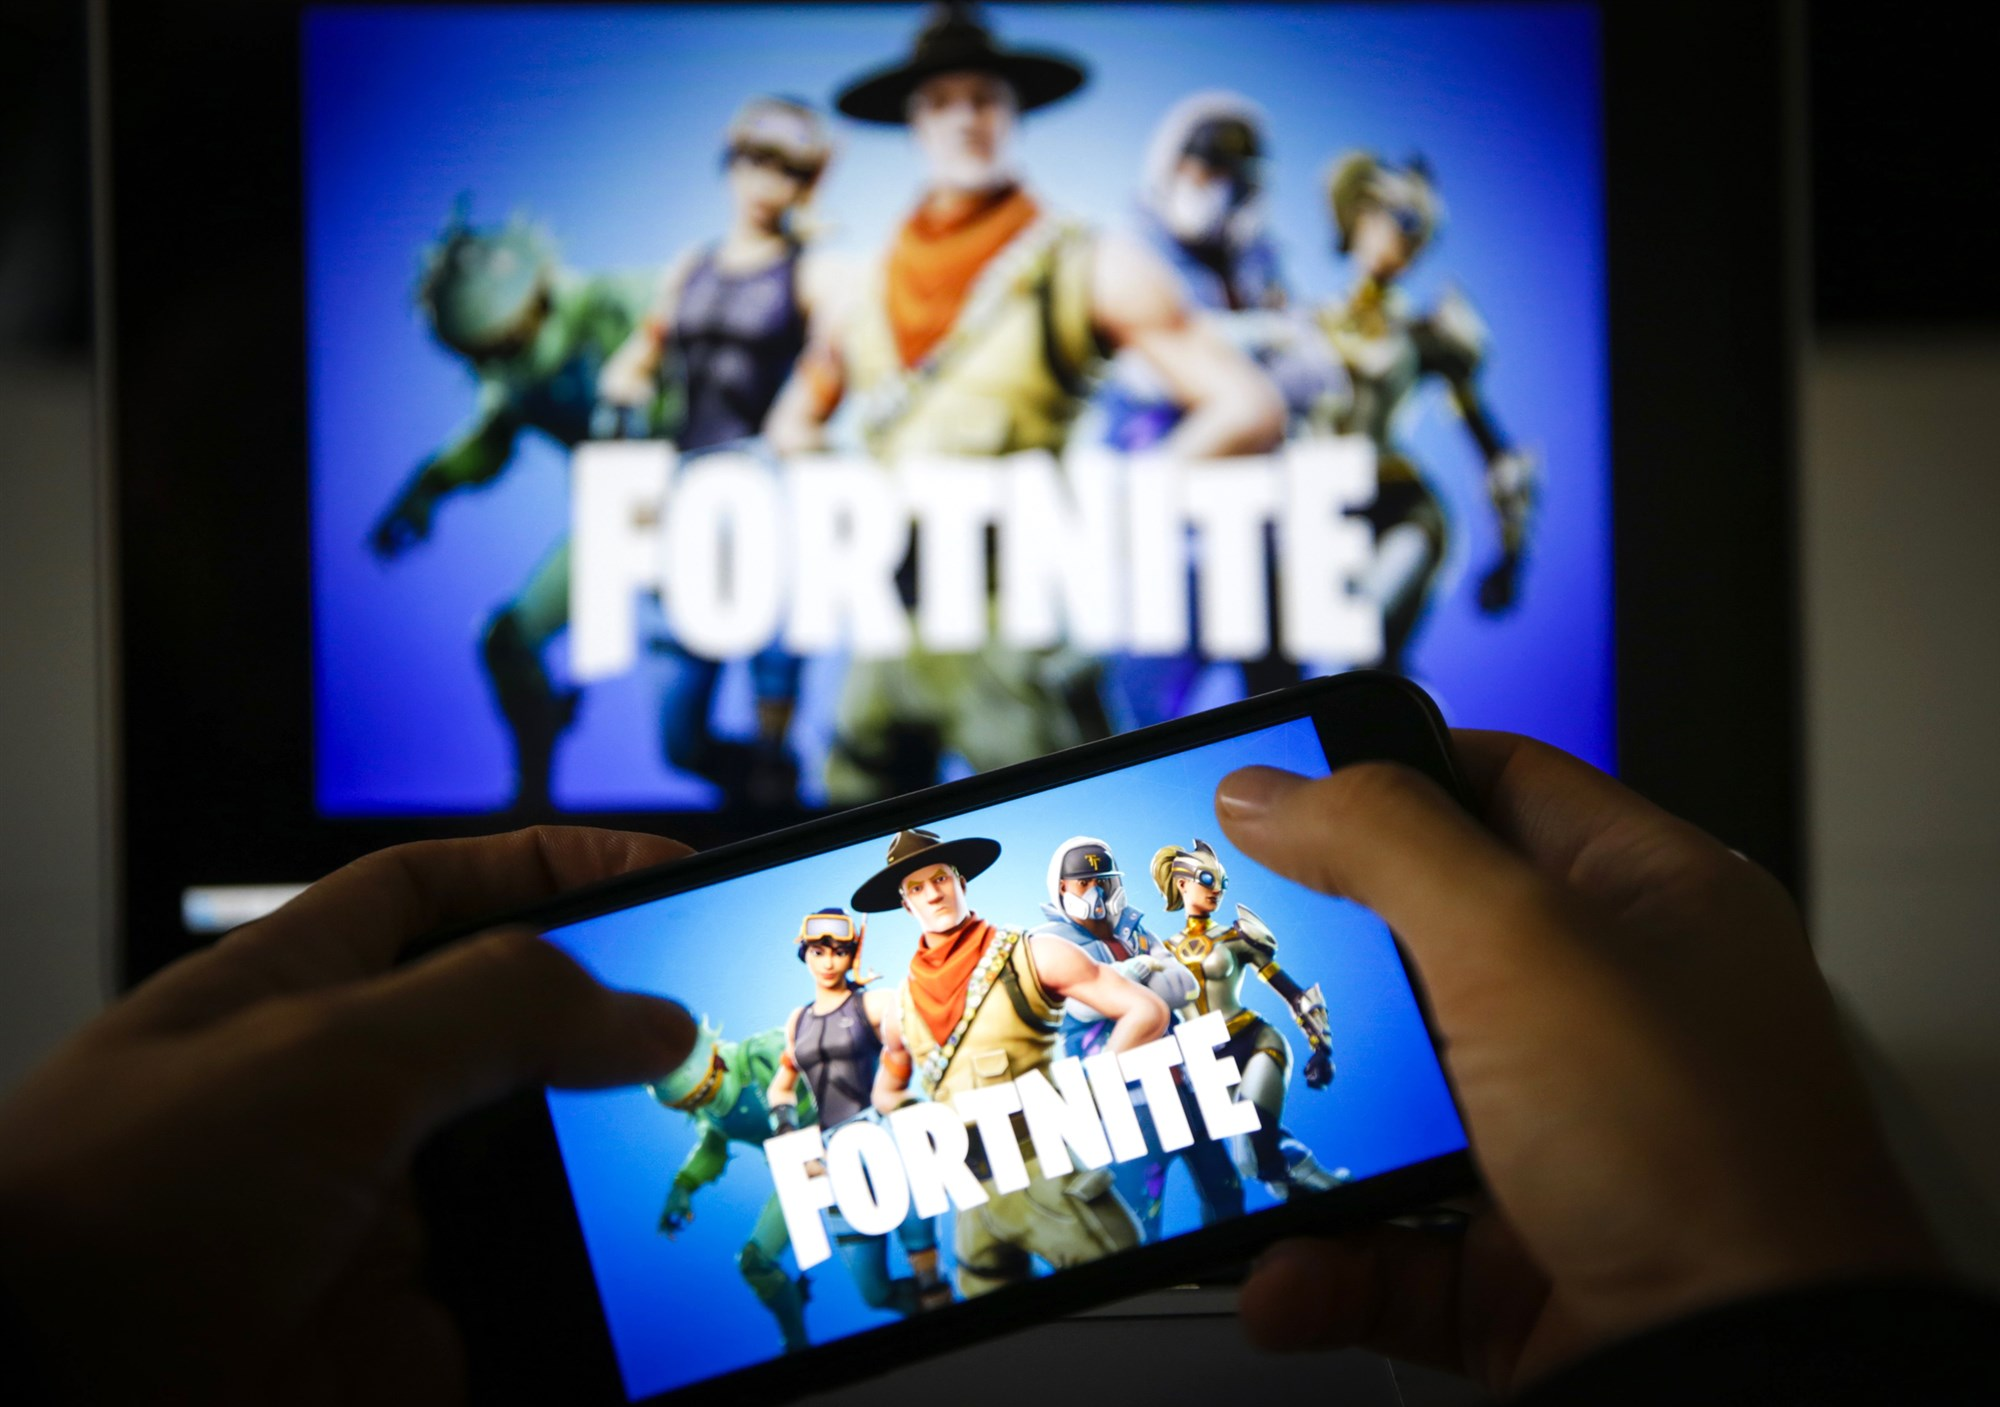 'Fortnite' conquered the video game world. Now, it's taking on Google and Apple.